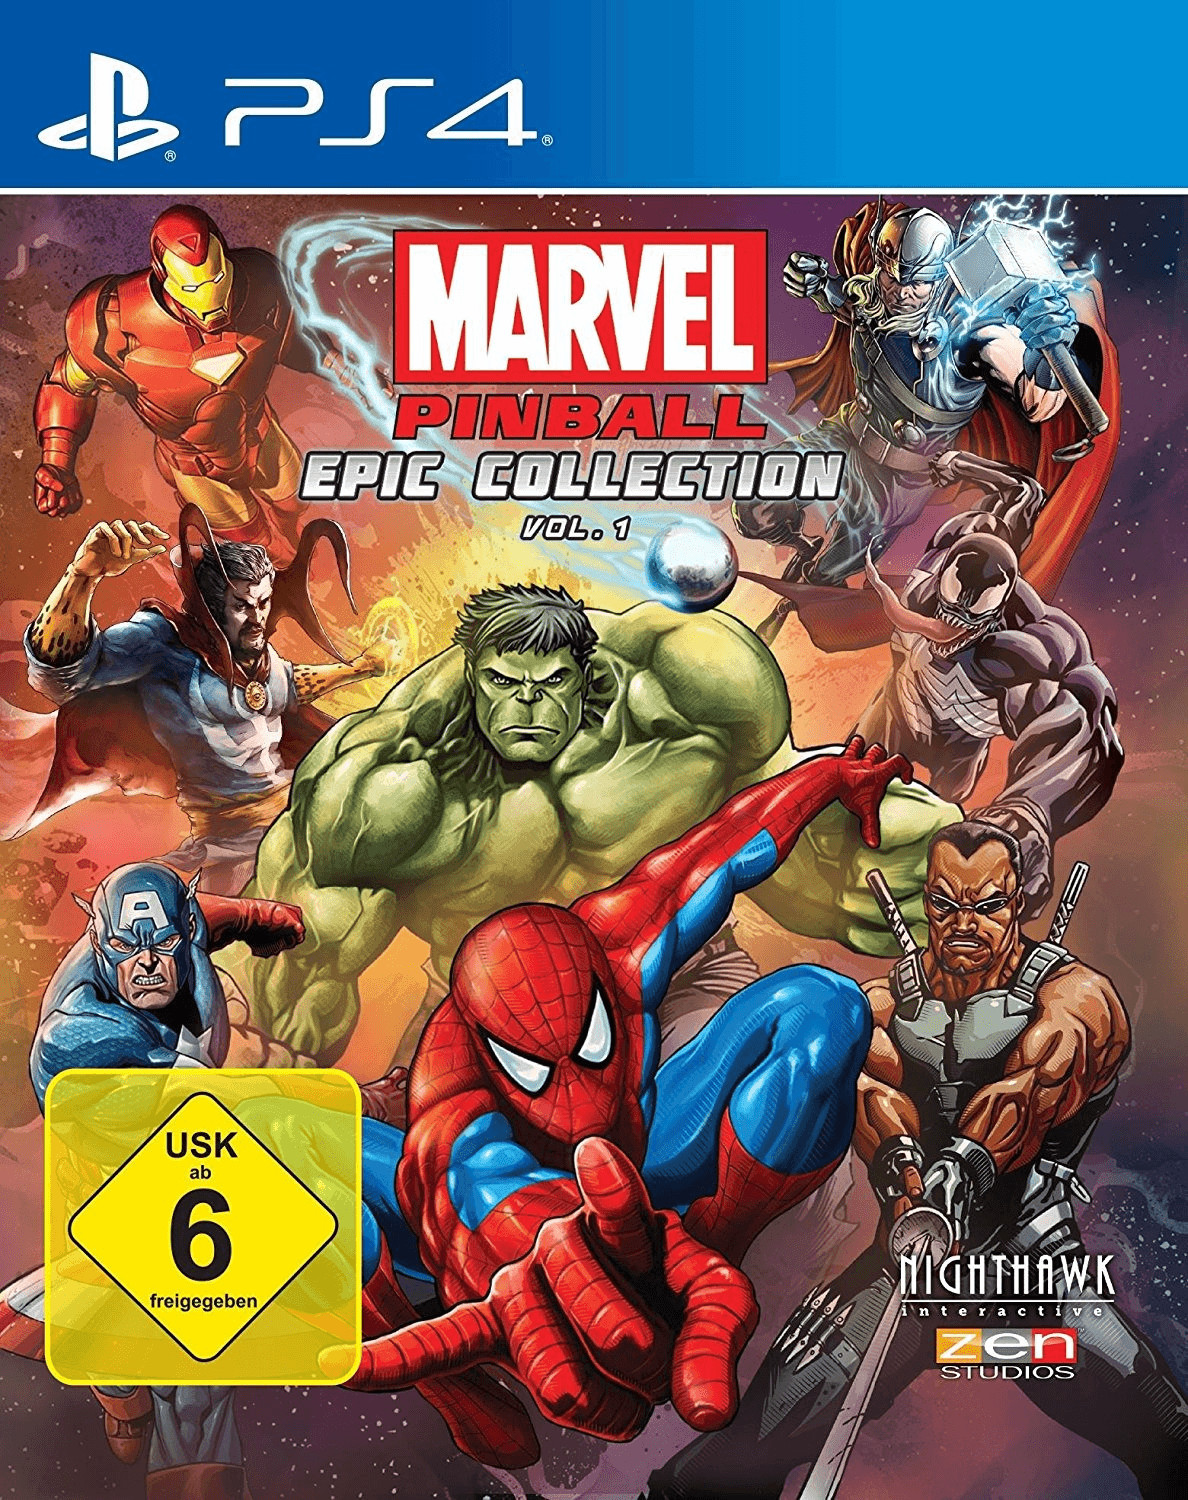 Marvel Pinball: Epic Collection - Vol. 1 (PS4)